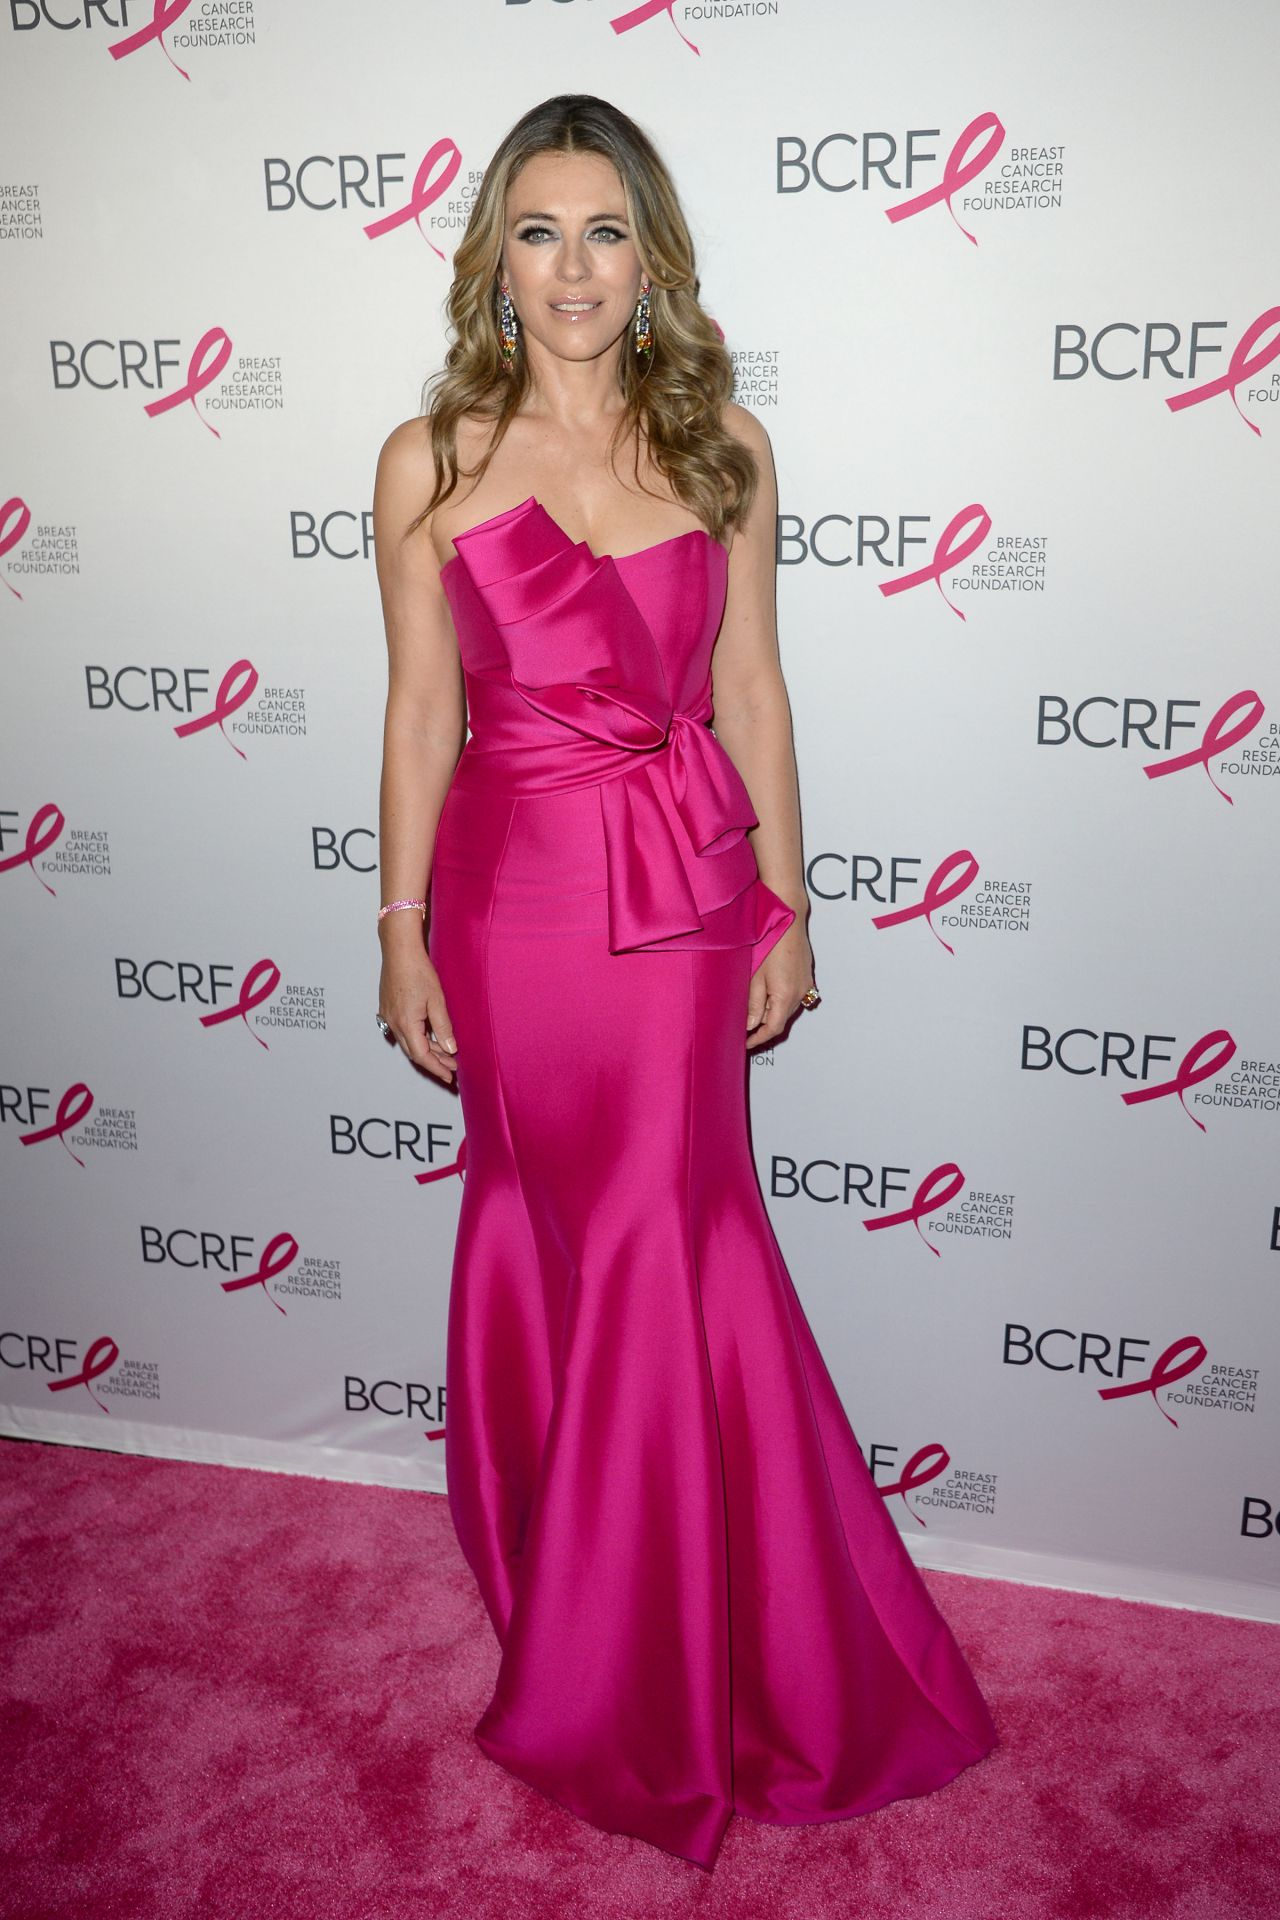 http://celebmafia.com/wp-content/uploads/2018/05/elizabeth-hurley-the-hot-pink-party-new-depths-in-nyc-05-17-2018-14.jpg